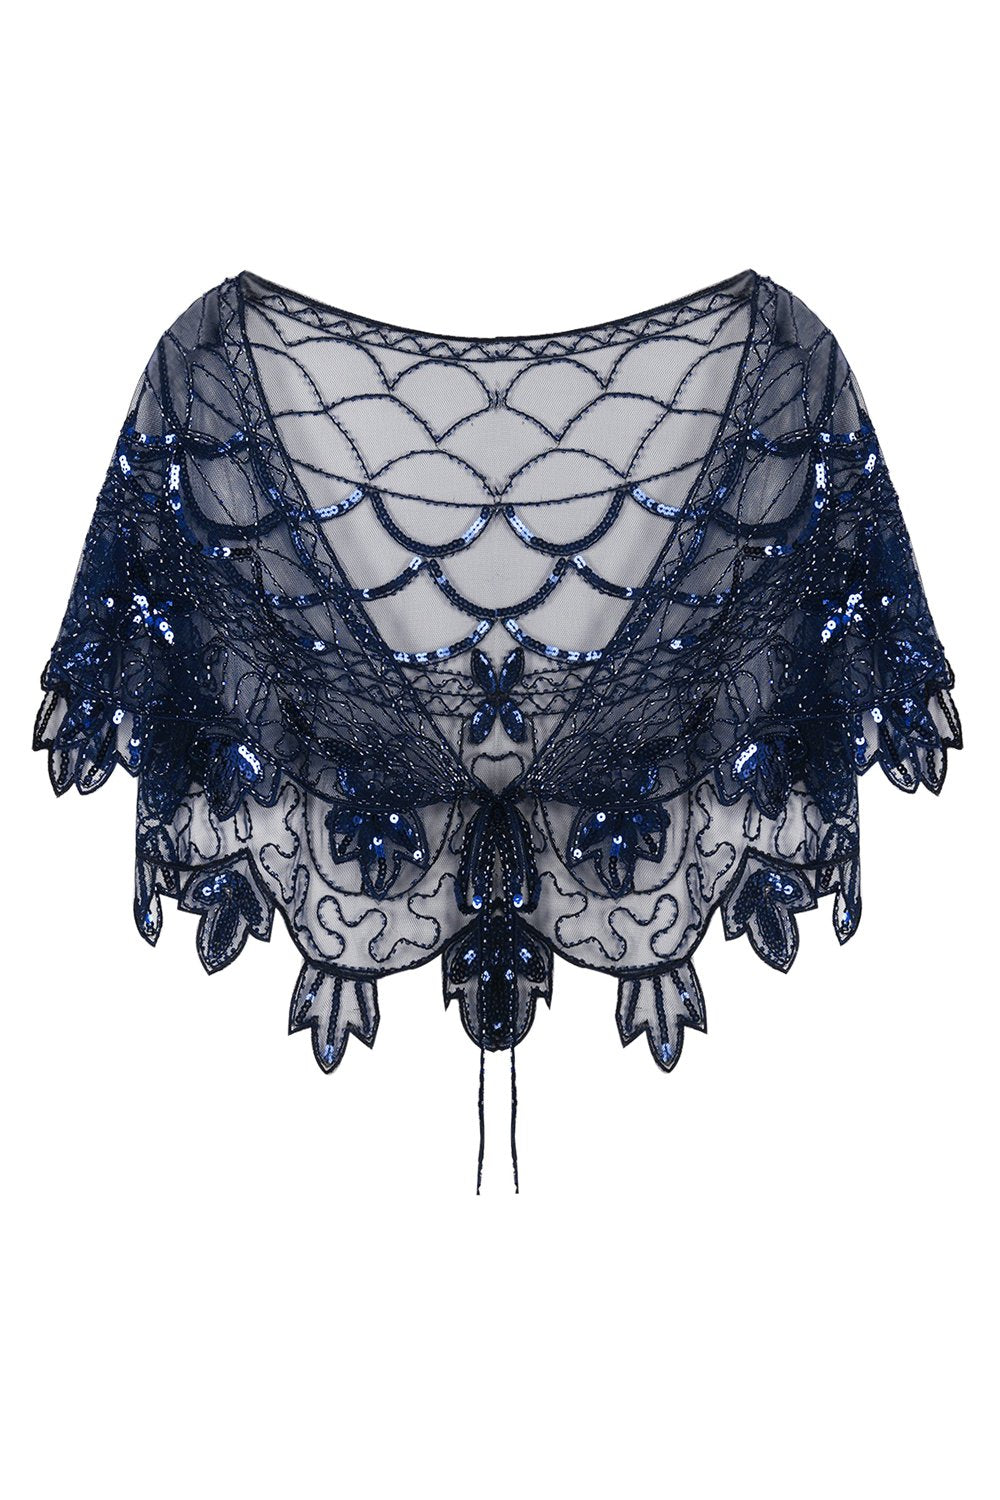 1920s Blue Flower Sequin Women Cape